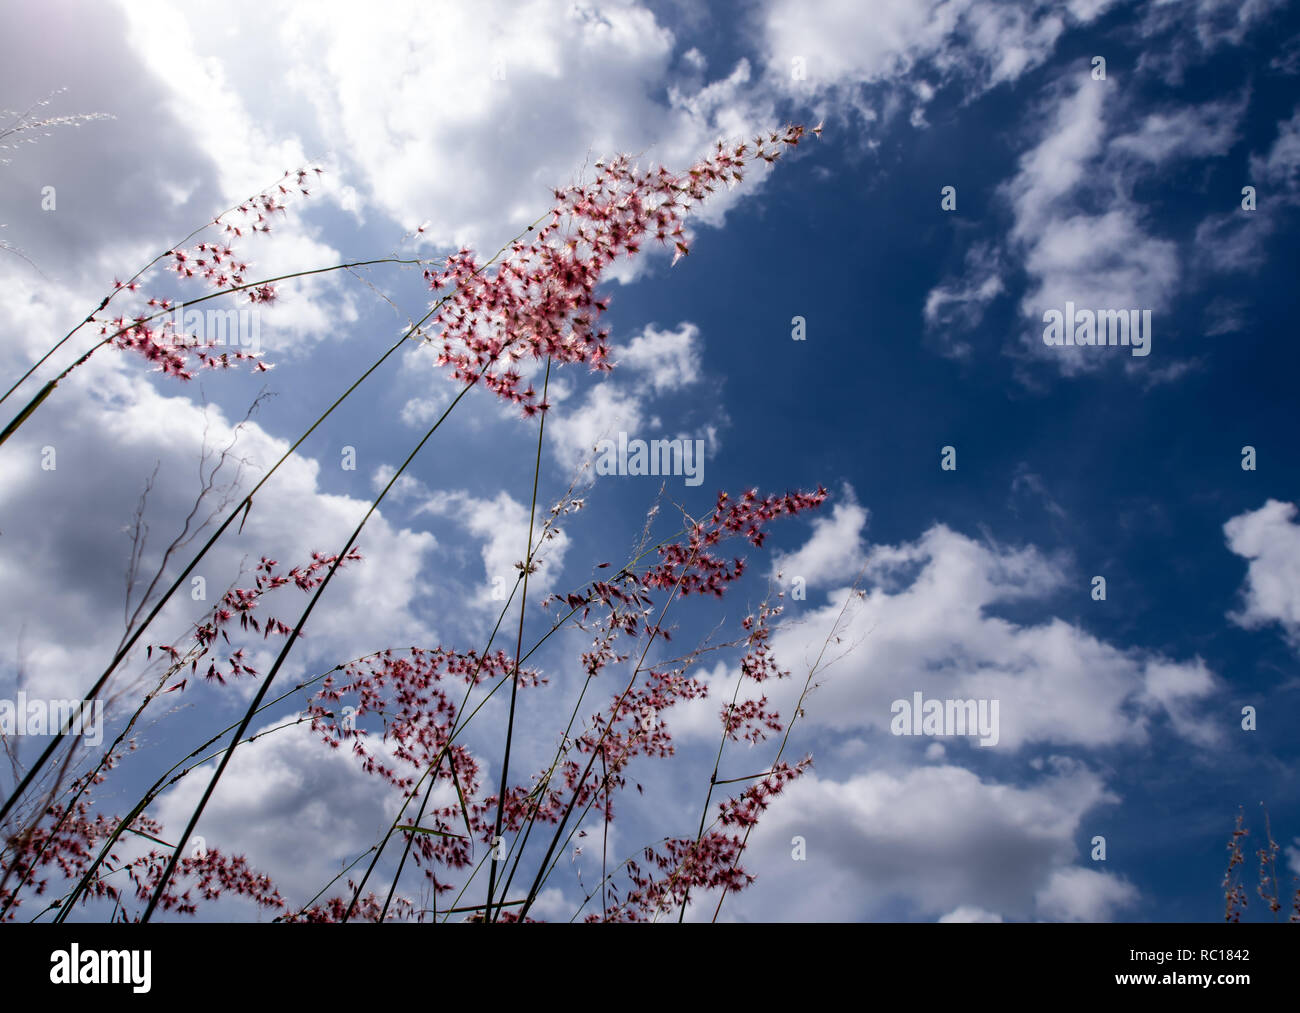 Flower of Natal redtop ruby grass in the bright sunlight and fluffy clouds in blue sky - Stock Image